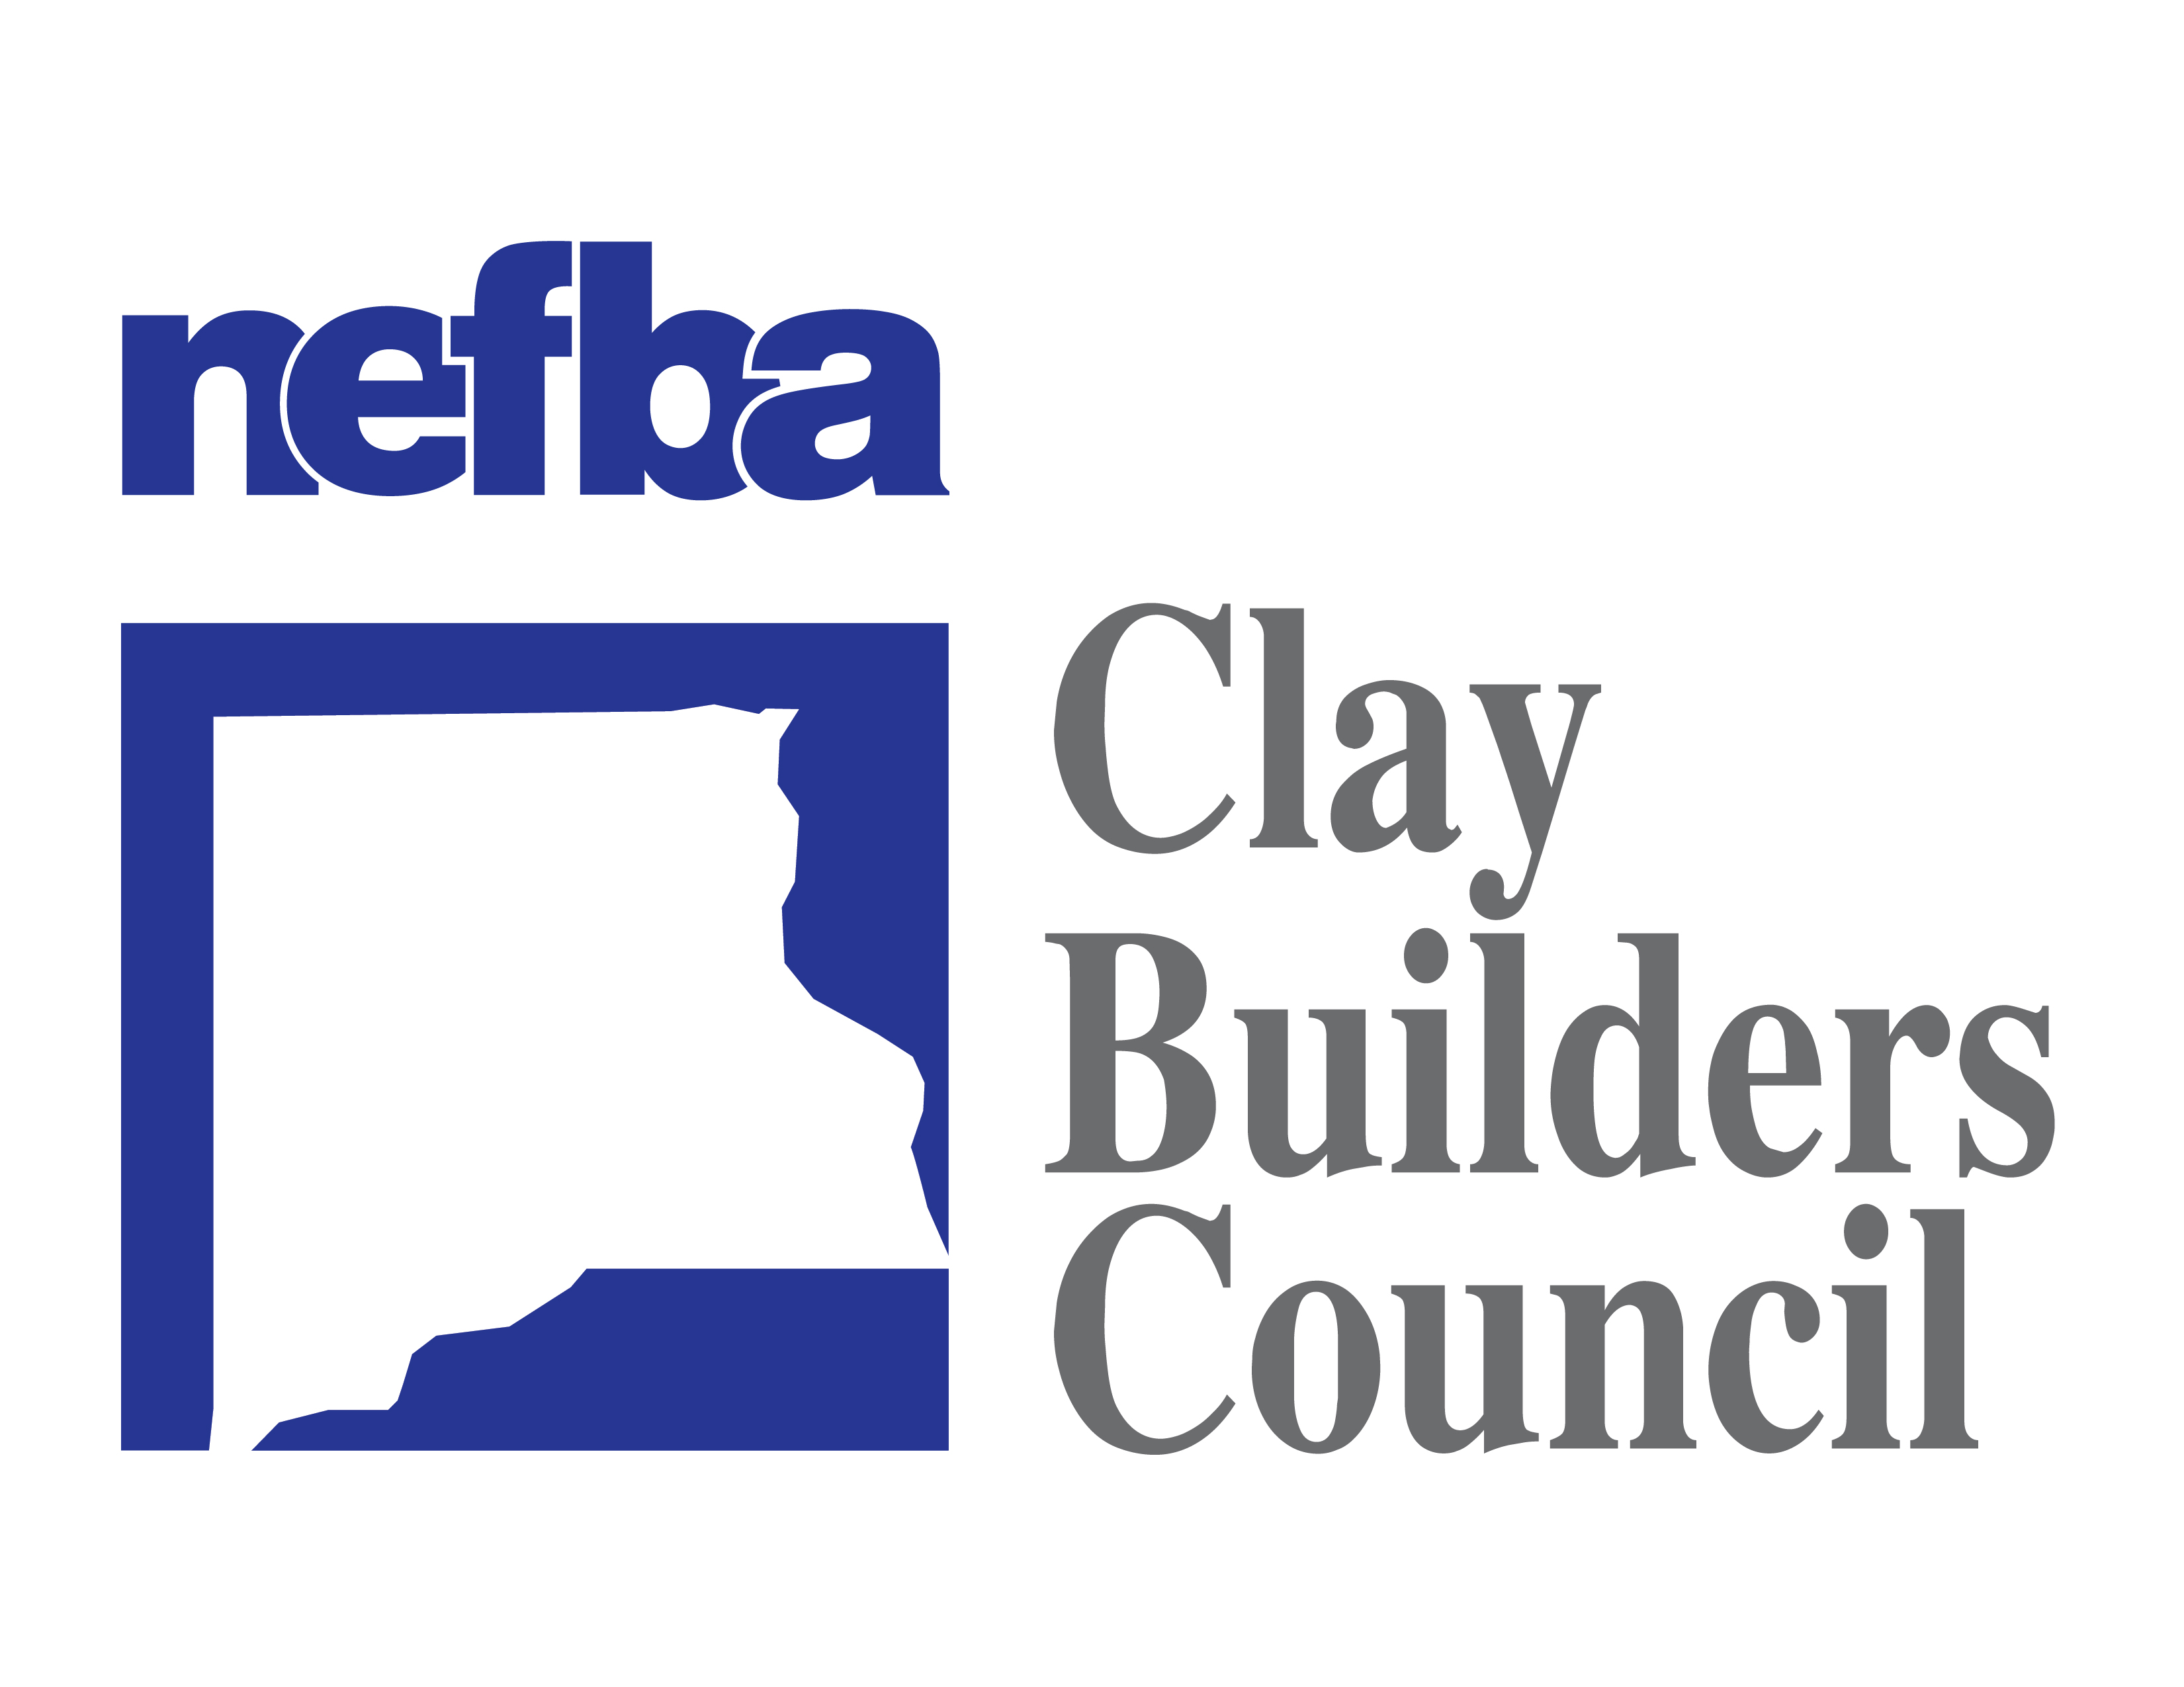 claybuilderscouncil-logo-blue